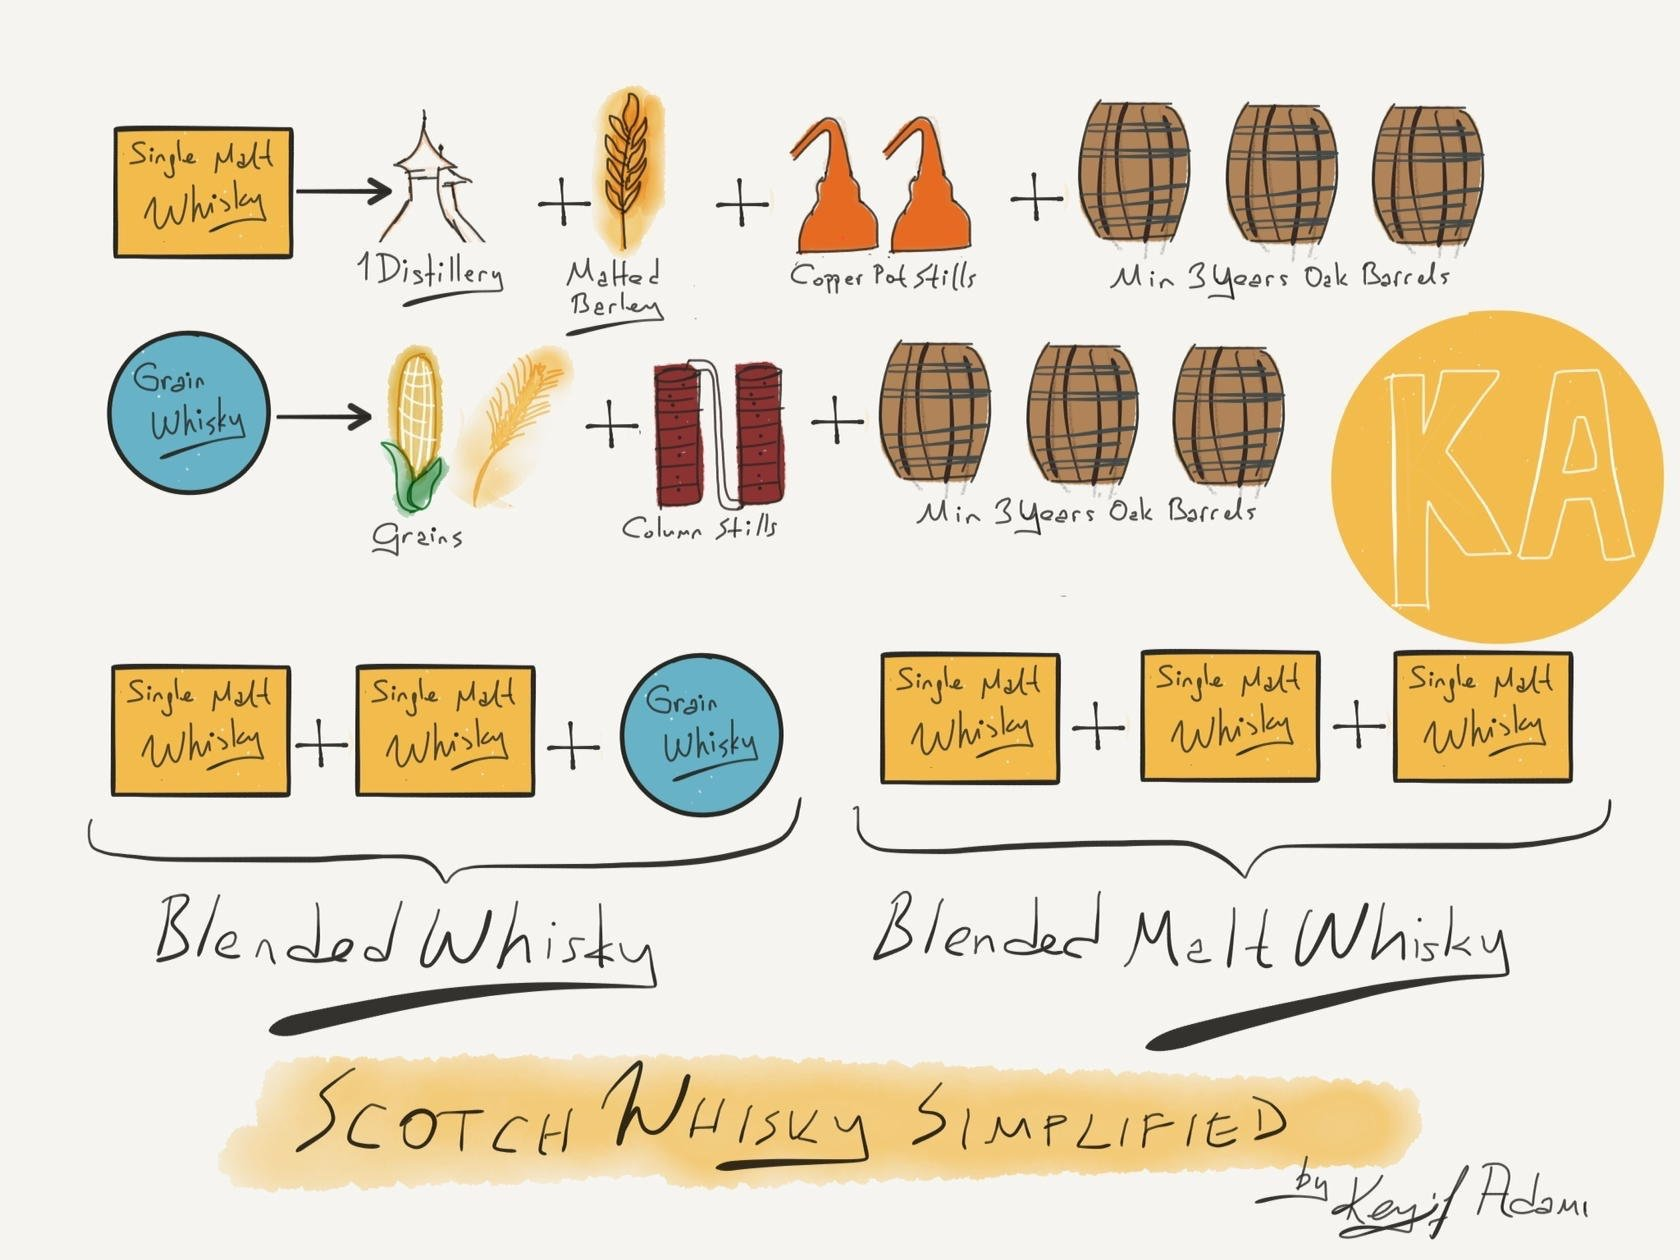 Scotch Whisky Production Simplified